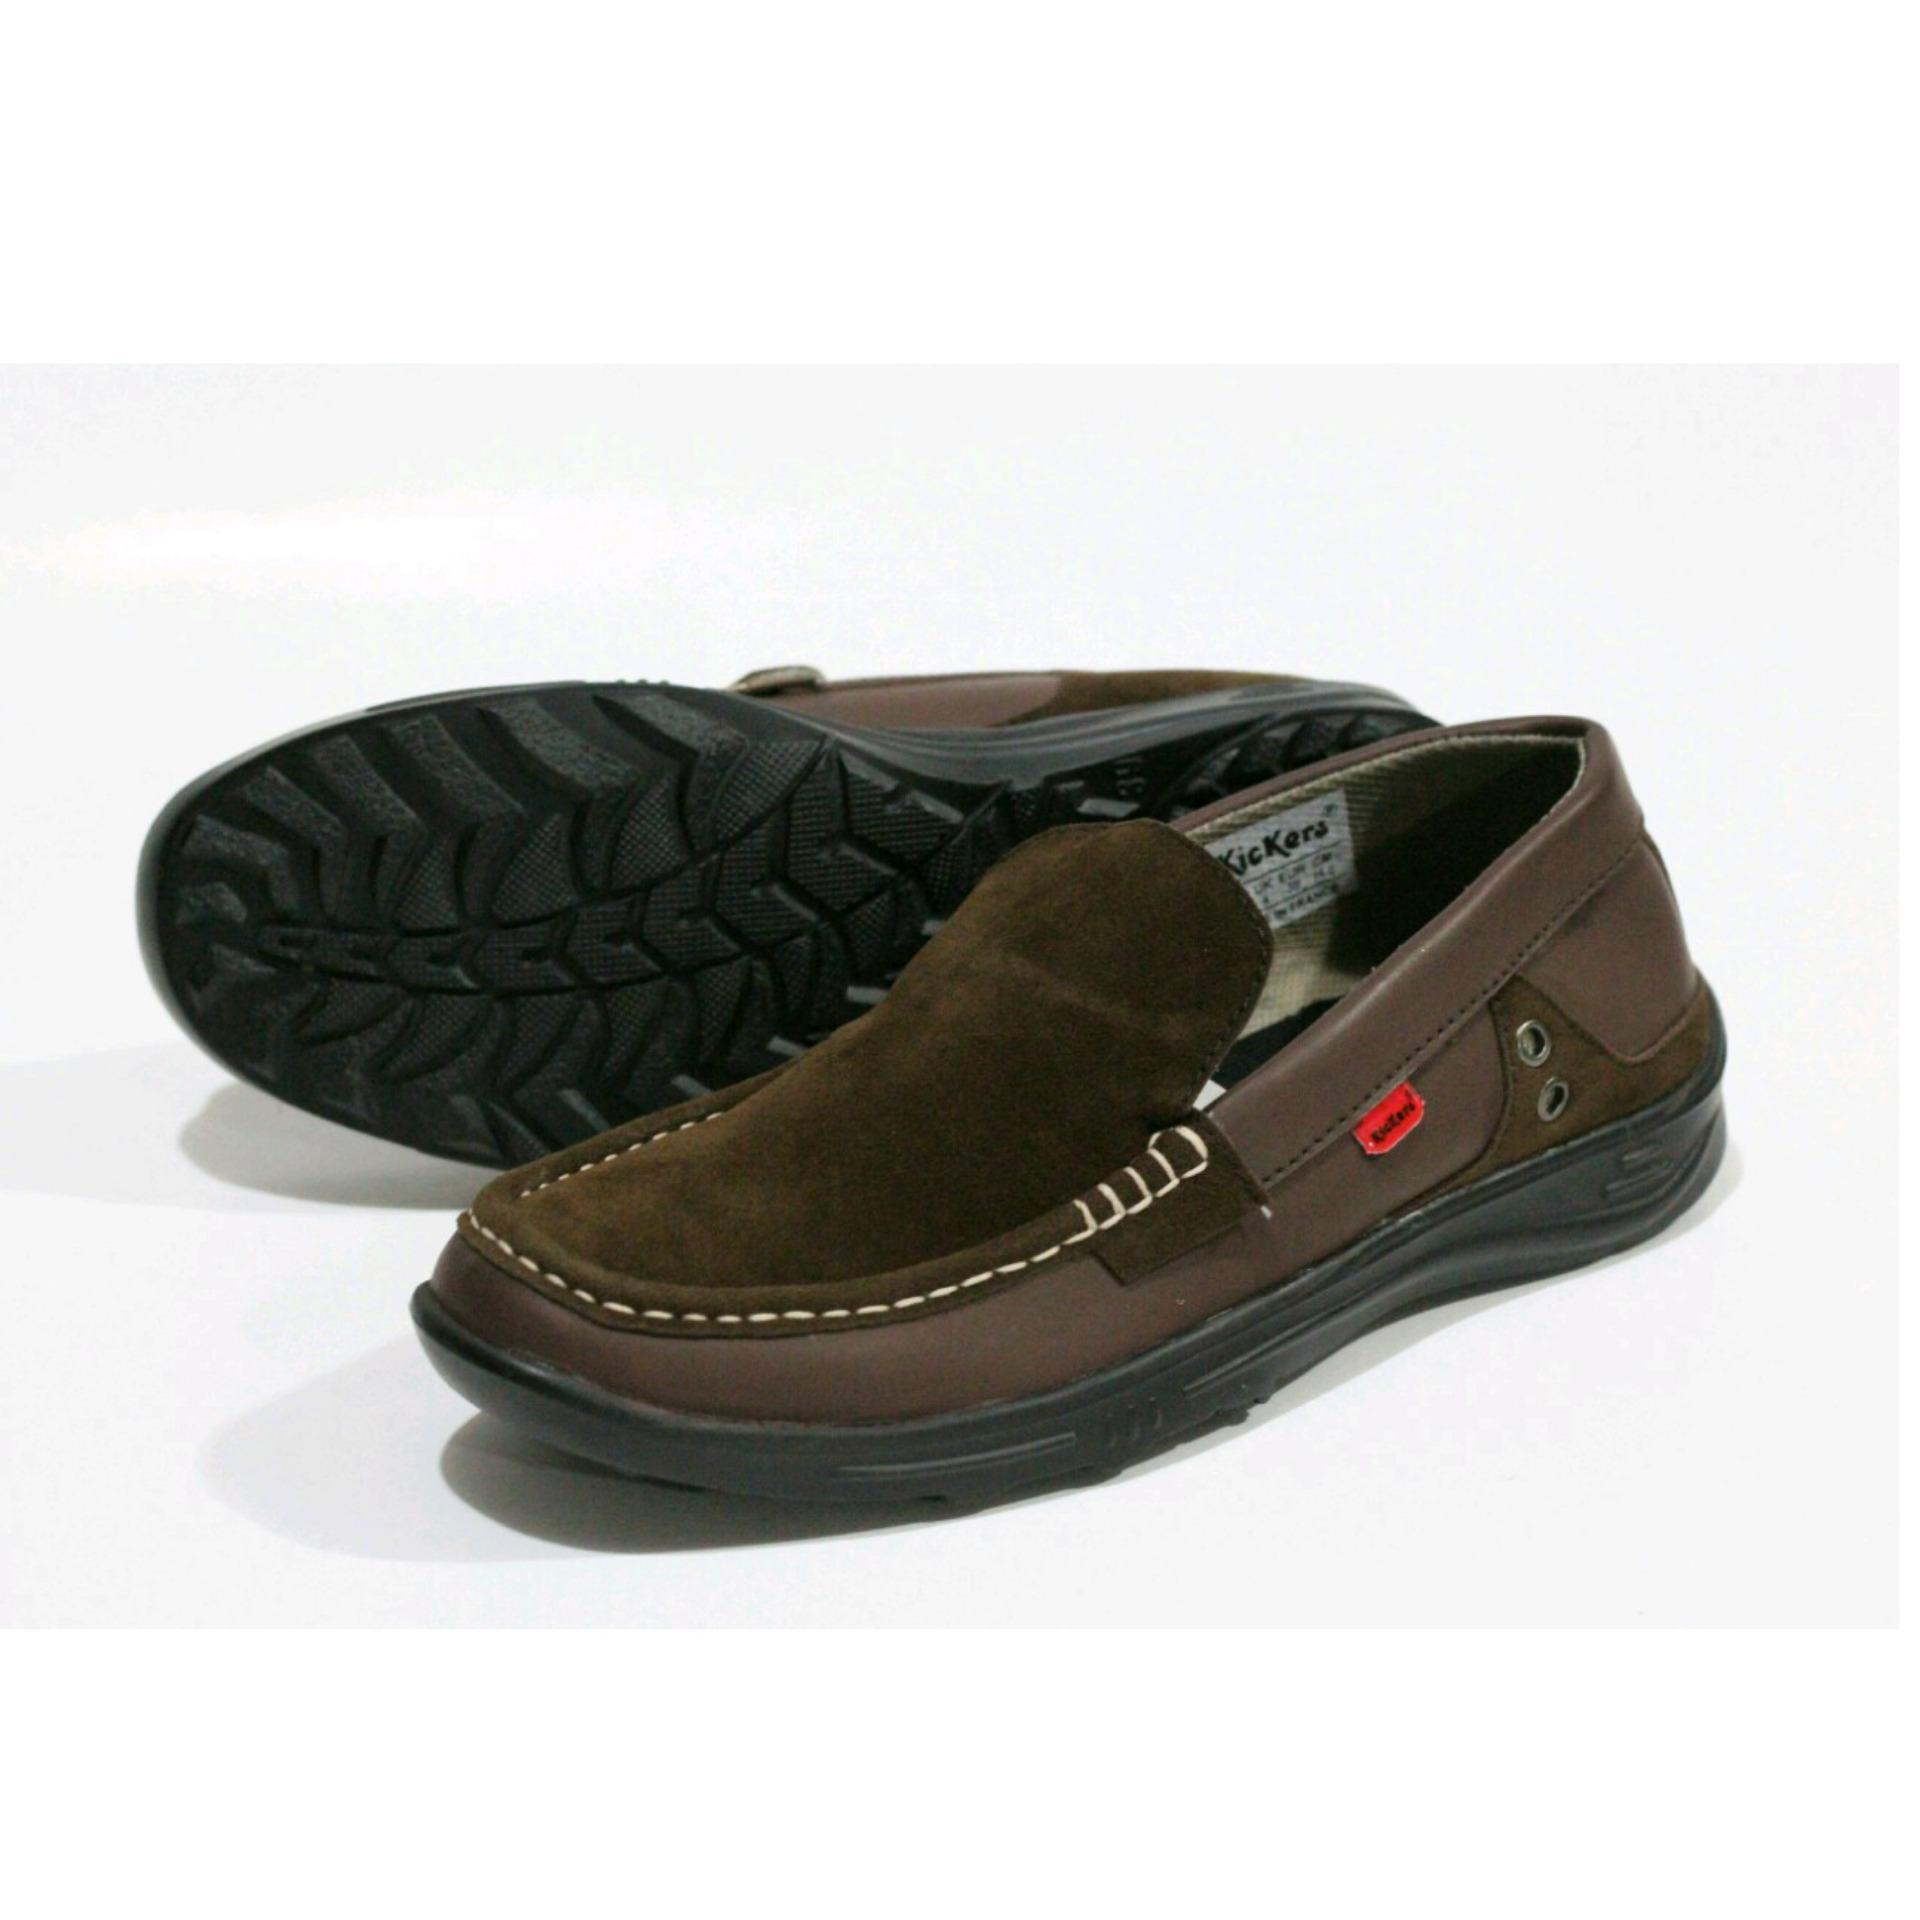 Sepatu Casual Slip On Kickers Suede Leather Drak Brown Promo Beli 1 Gratis 1